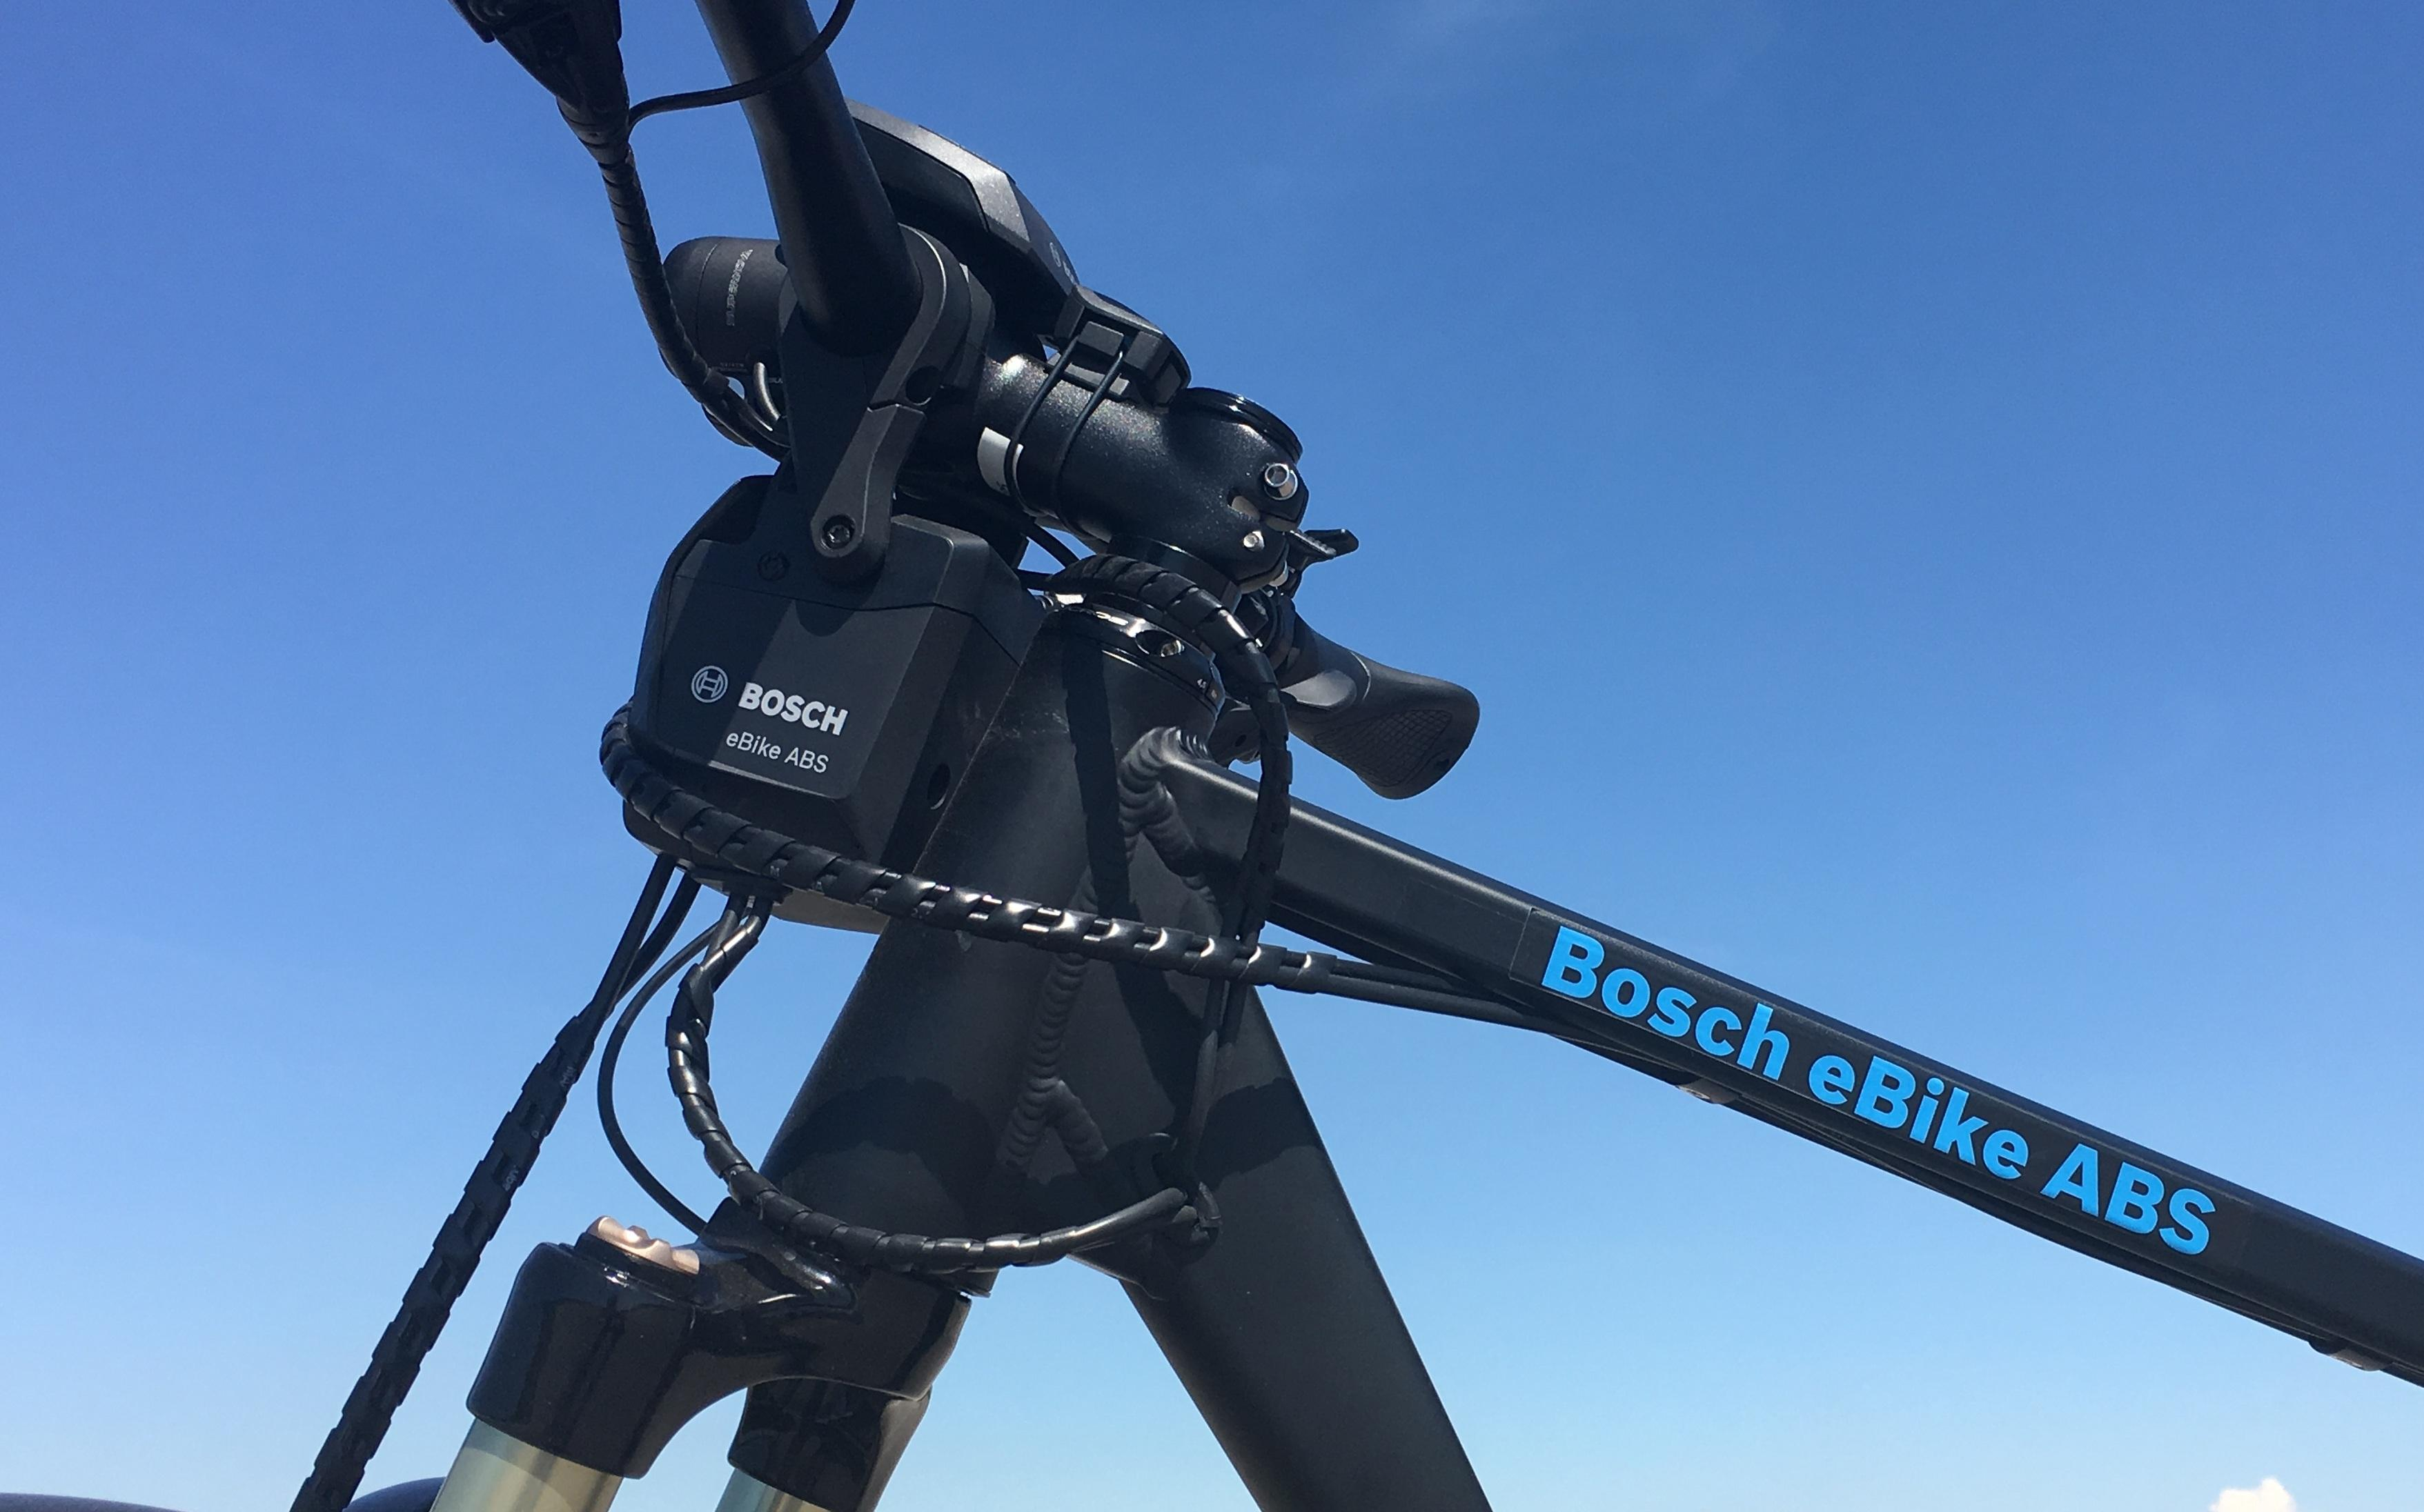 Bosch bicycle ABS